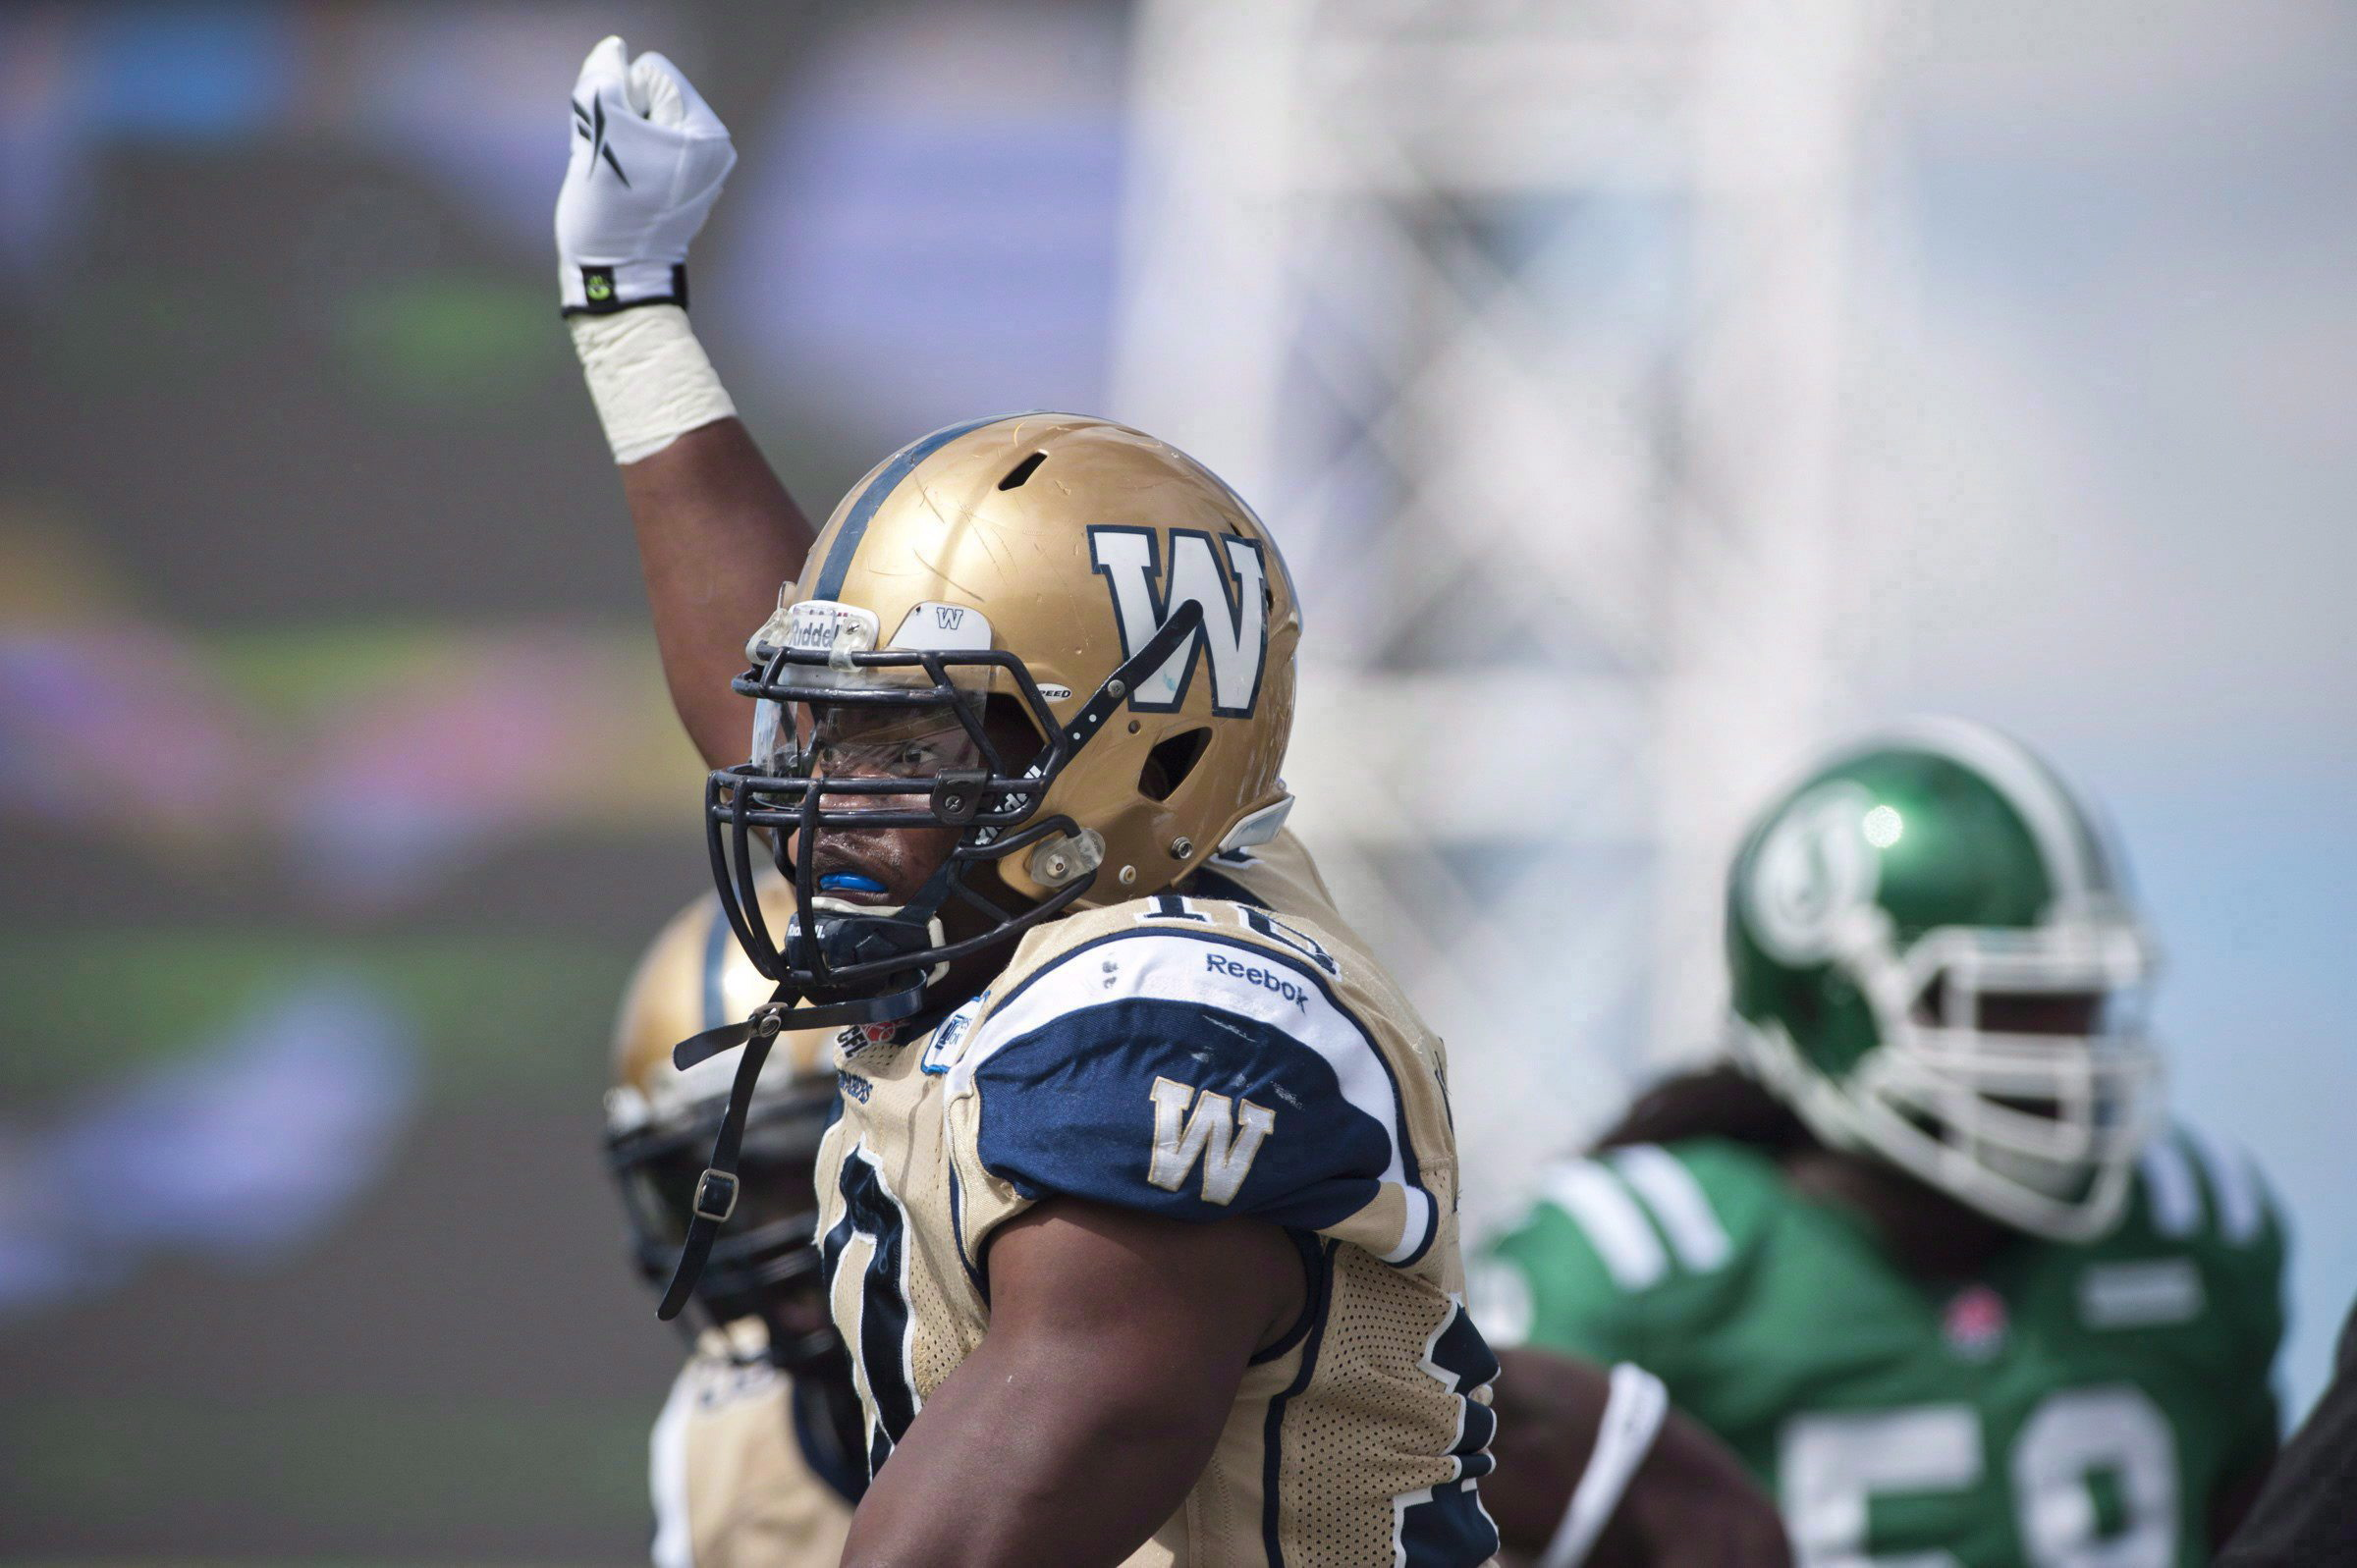 The Saskatchewan Roughriders signed national linebacker Henoc Muamba on Wednesday. Muamba, in Bombers colours, celebrates a tackle against the Saskatchewan Roughriders during CFL football action in Regina in a September 1, 2013, file photo. THE CANADIAN PRESS/Liam Richards